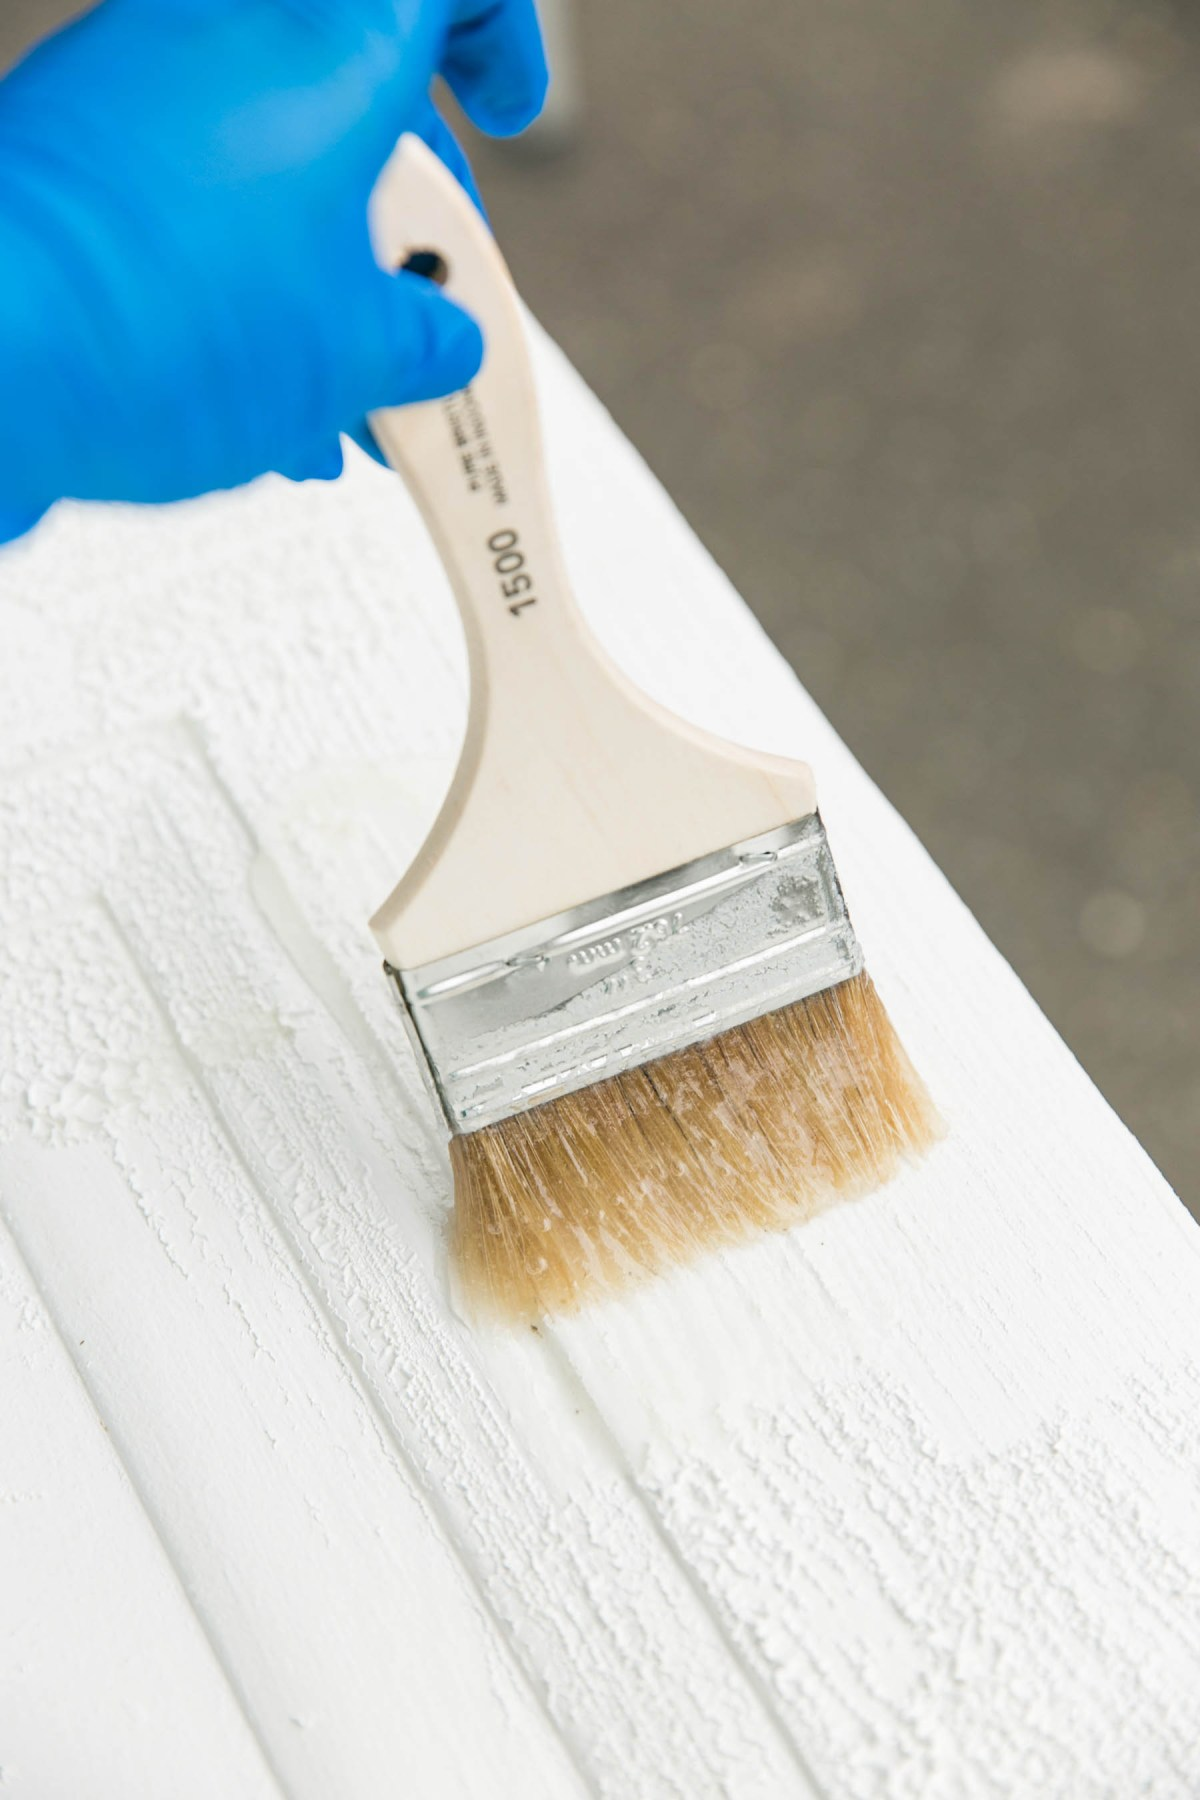 Yes You Can! How To Strip Paint From a Wood Door | Paint Stripping | Remove Paint | DIY | Jessica Brigham | Magazine Ready for Life